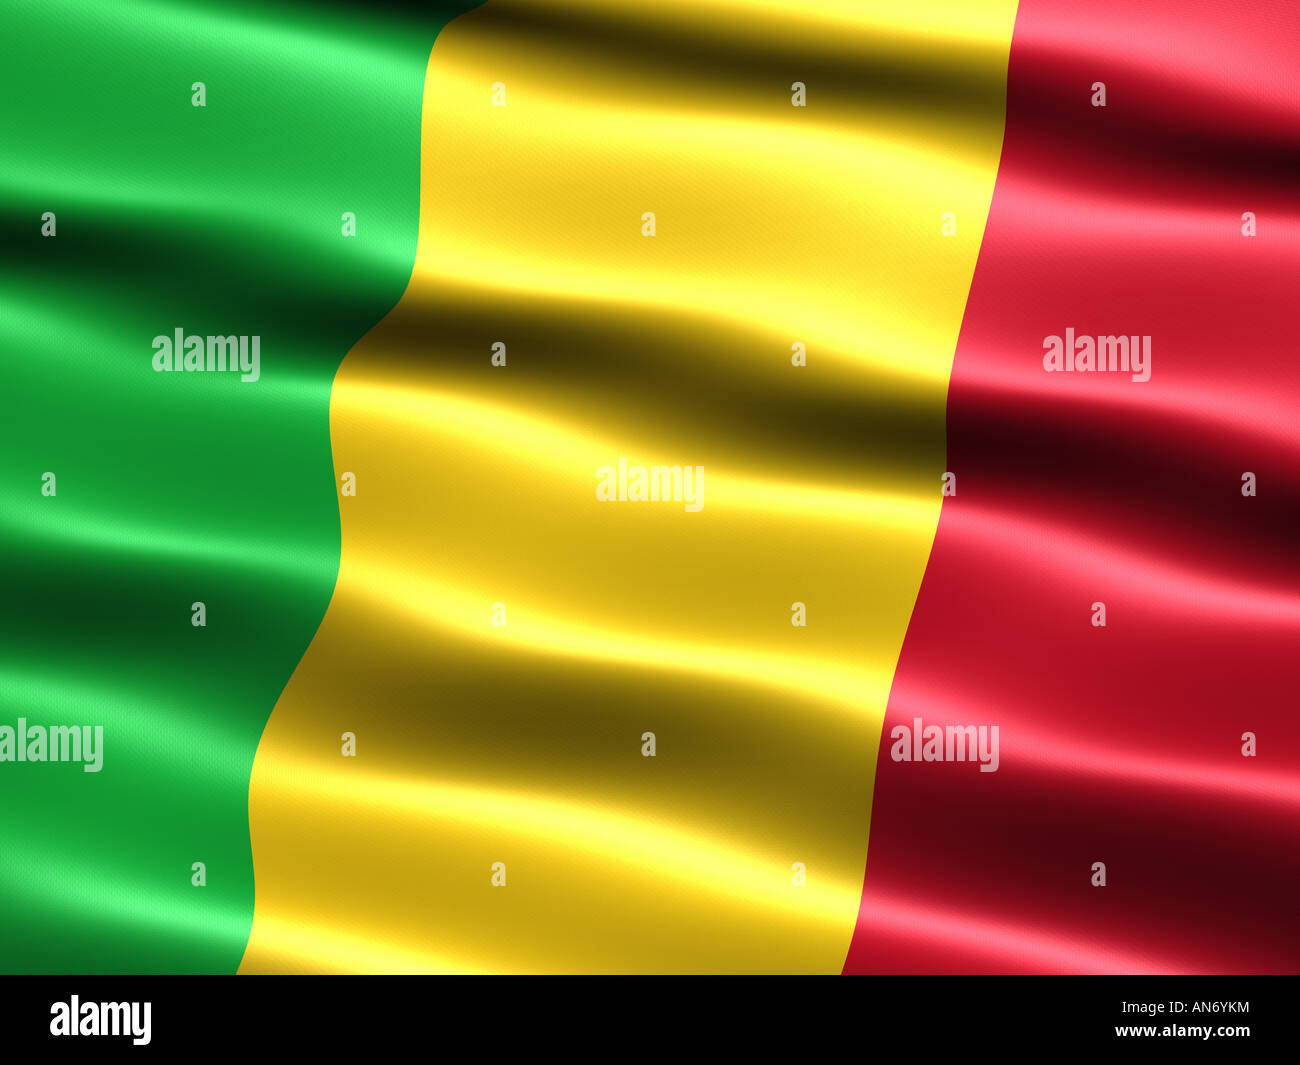 Flag of Mali computer generated illustration with silky appearance and waves - Stock Image